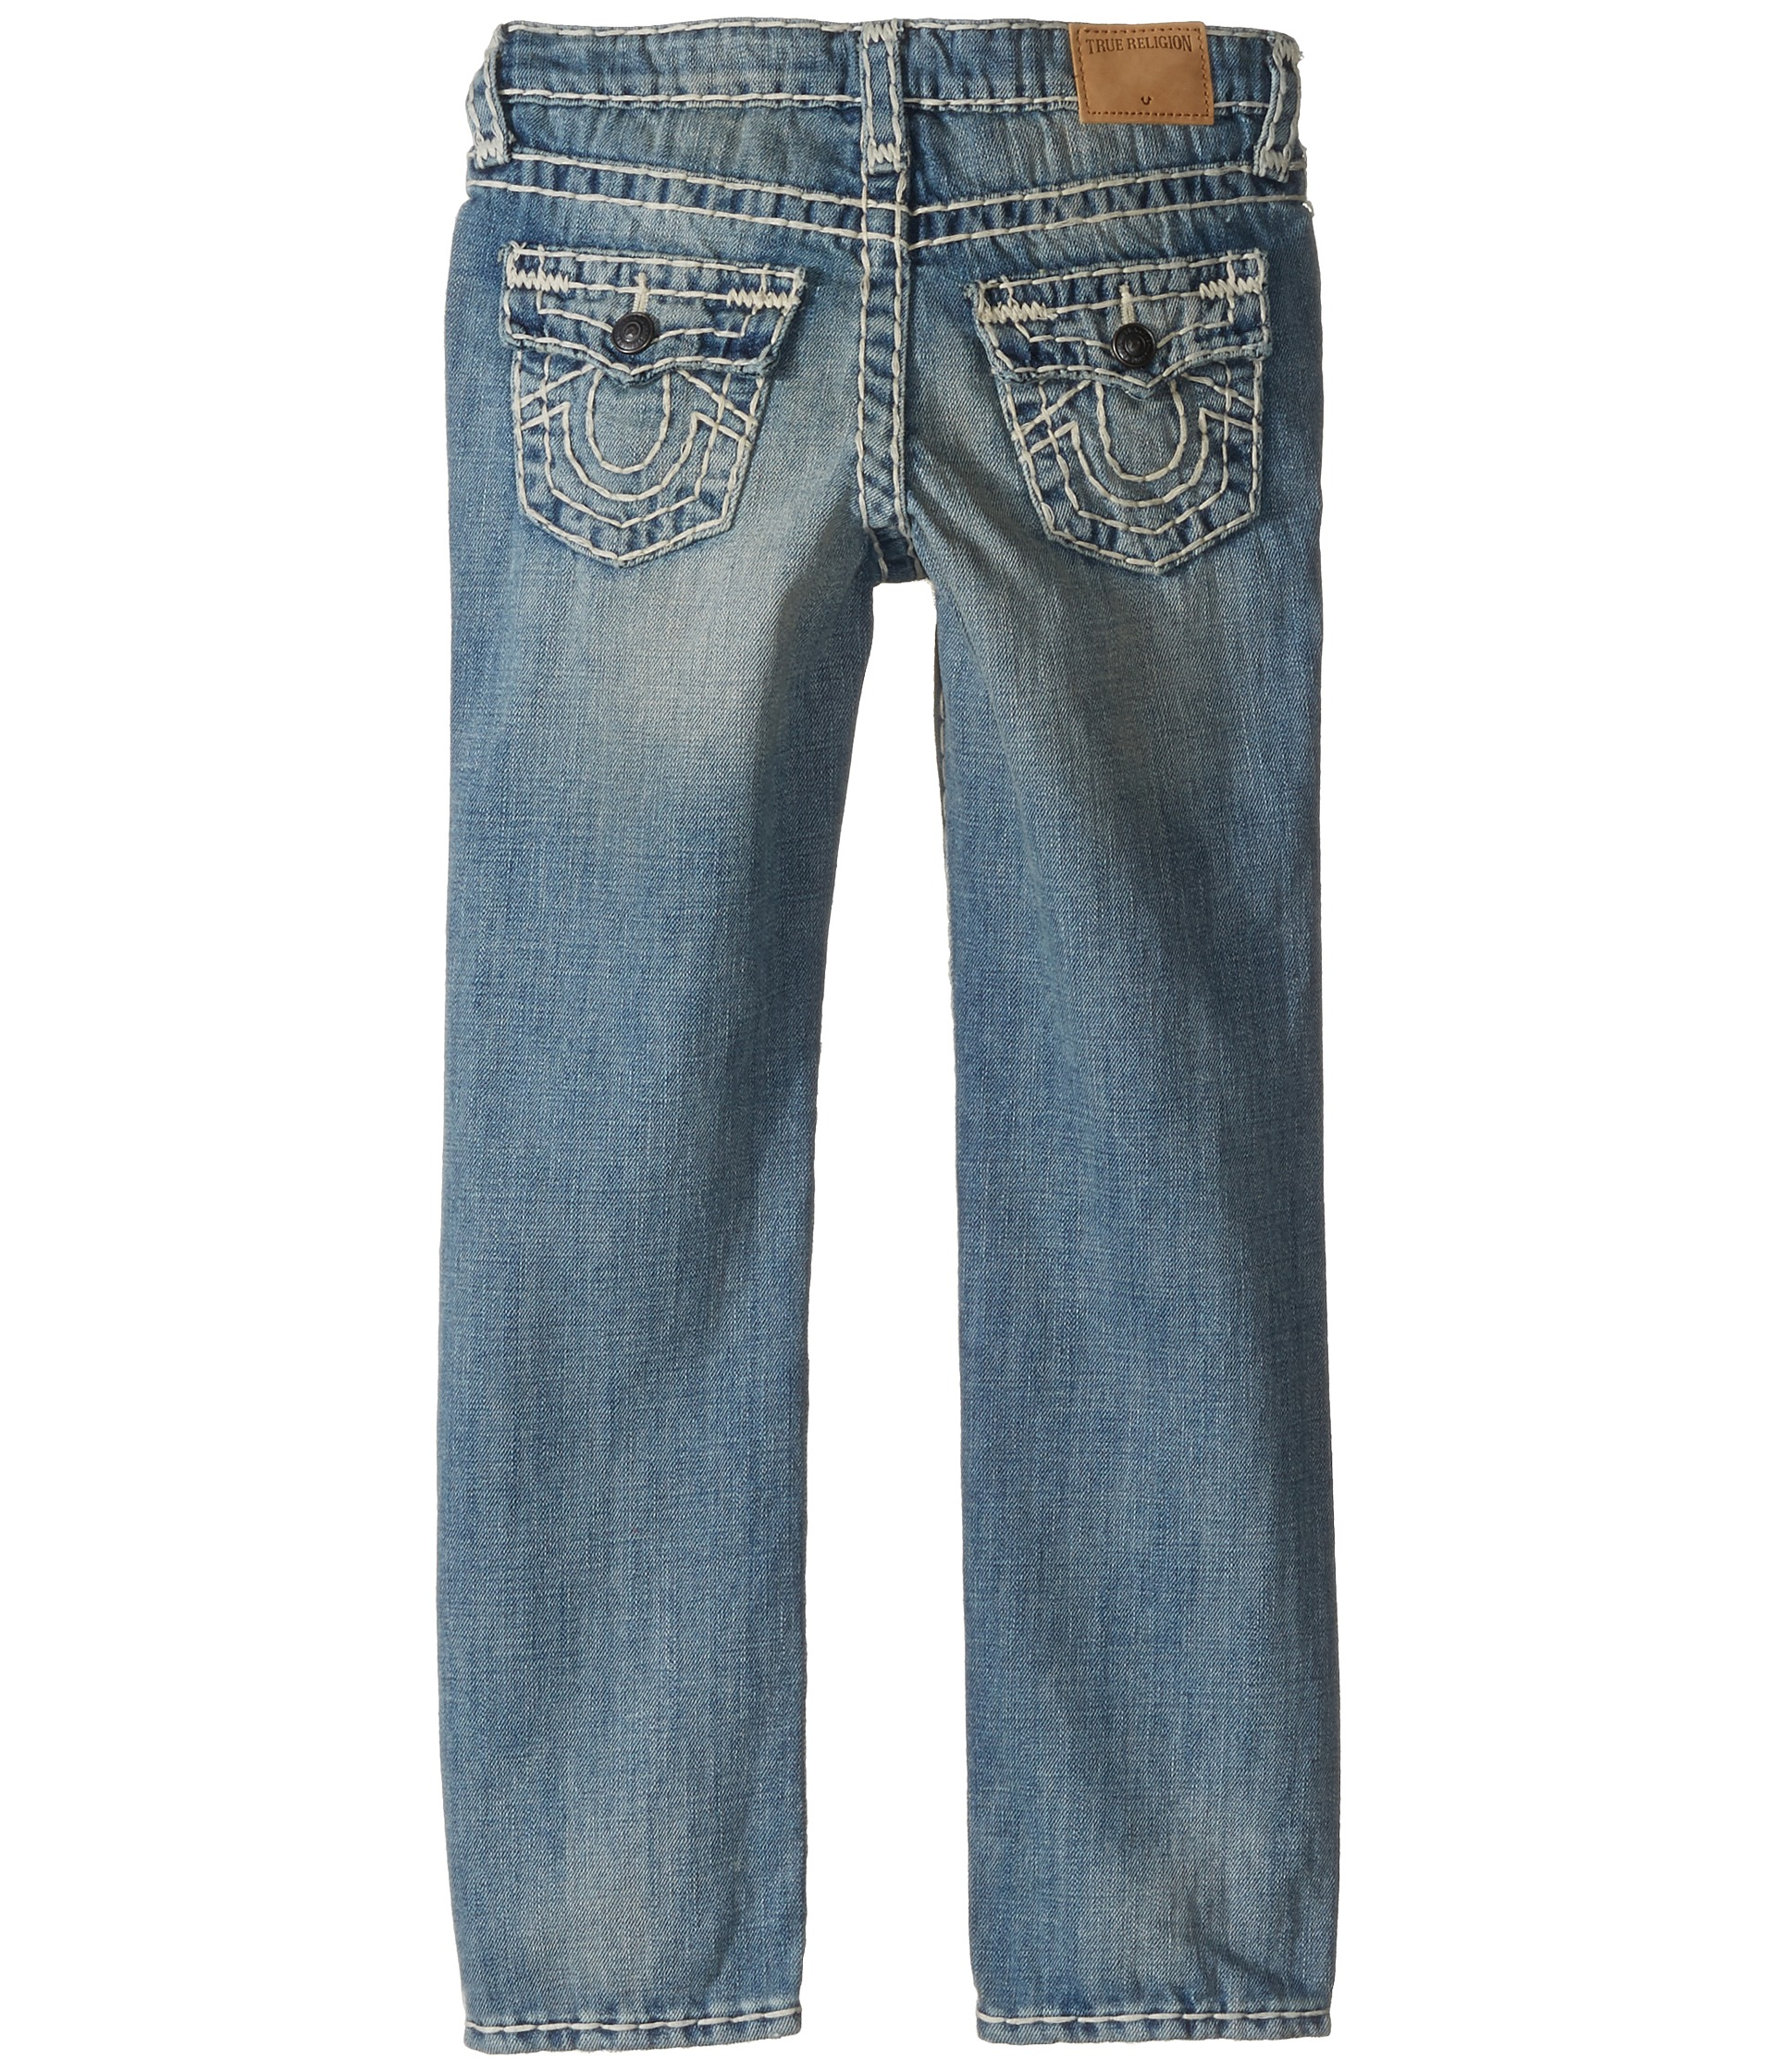 c179a6cba True religion jeans for baby - Foxwoods casino hotel discounts